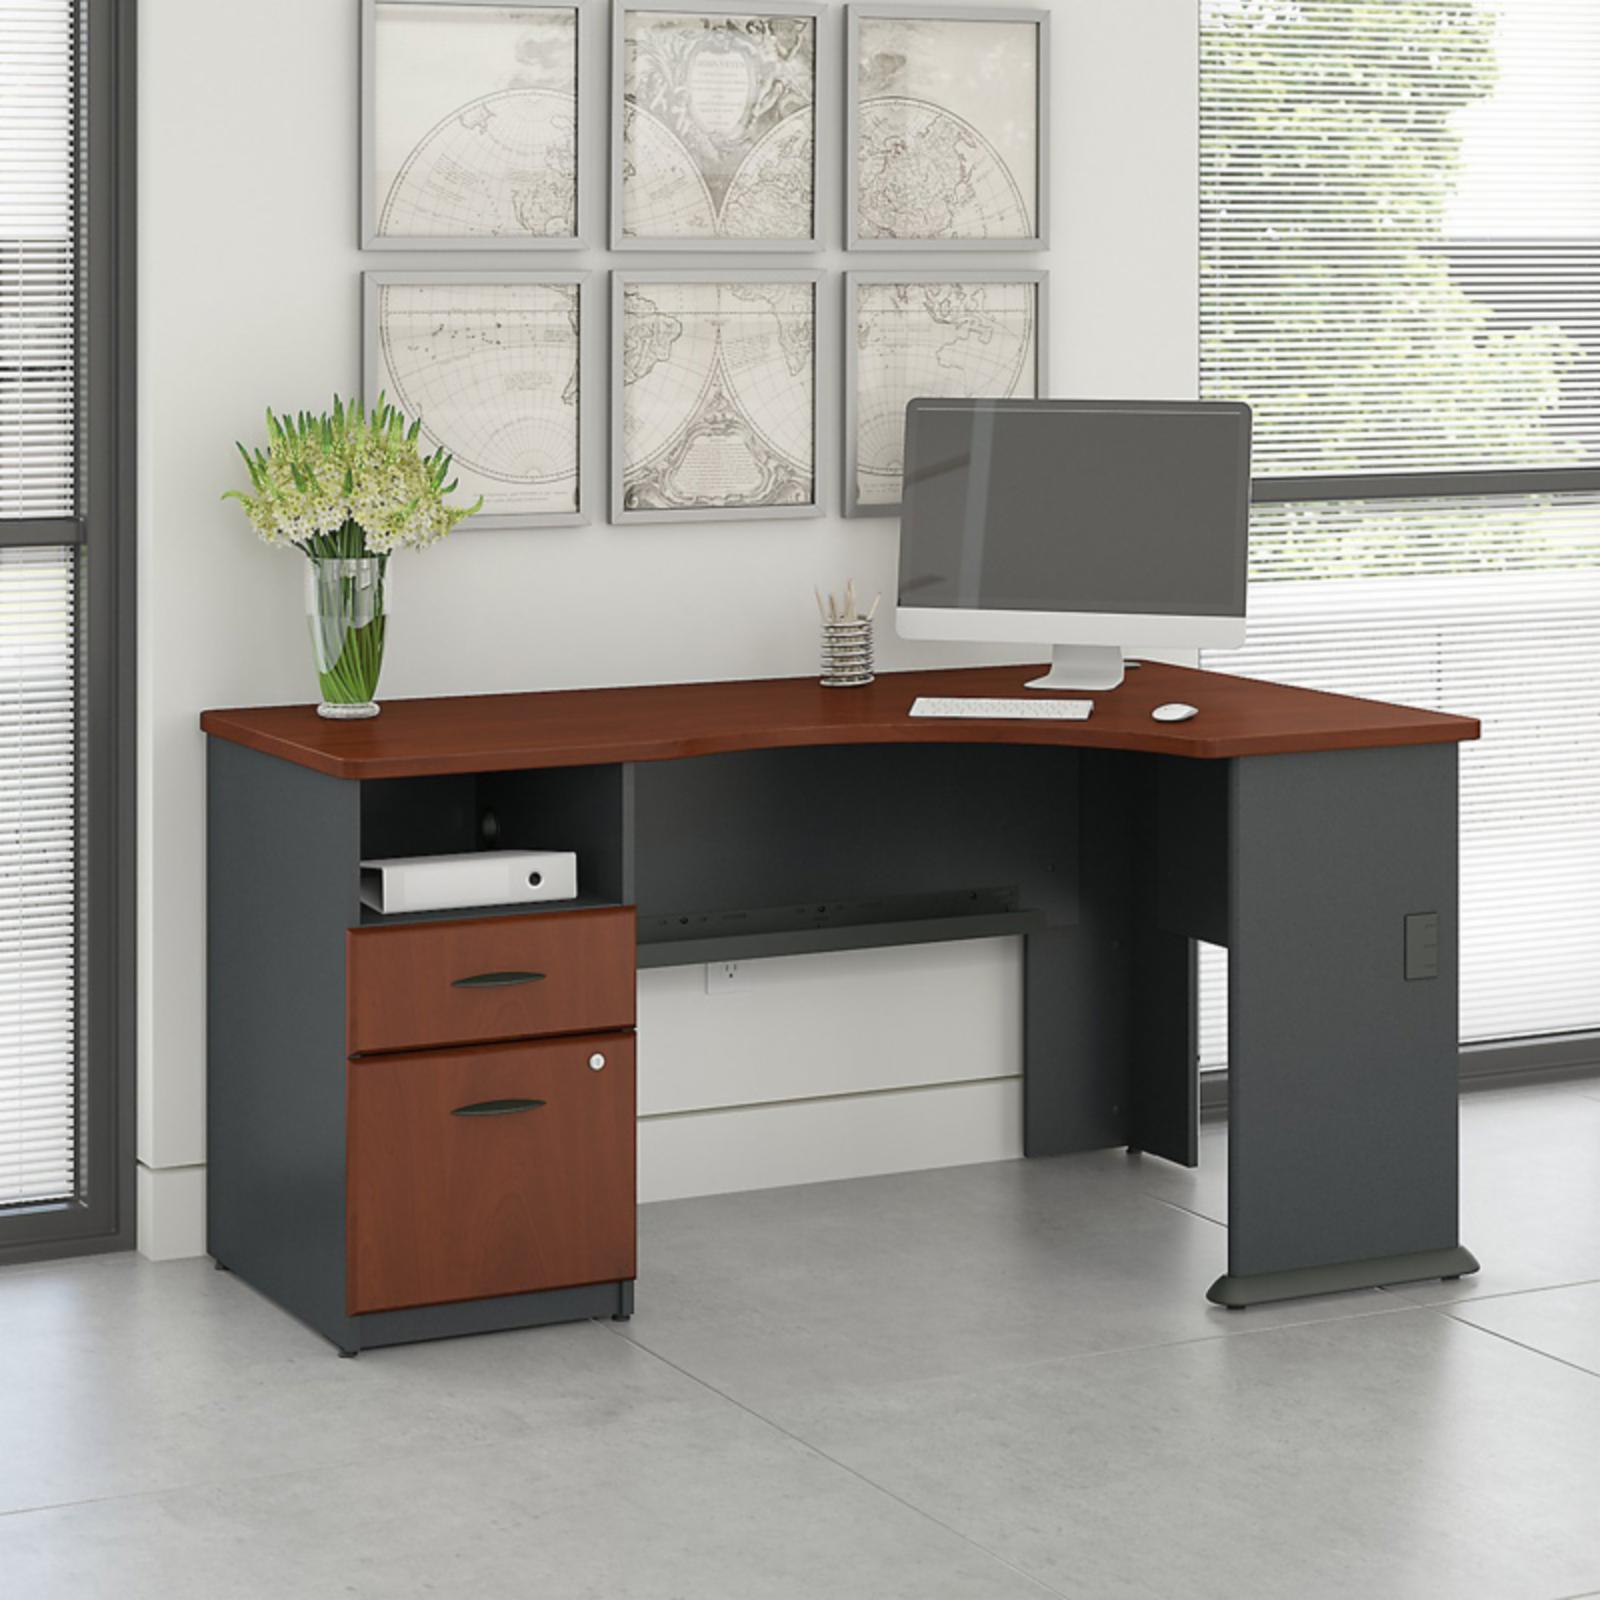 Office Connect Access Corner Office Desk with Pedestal - ACS001HC